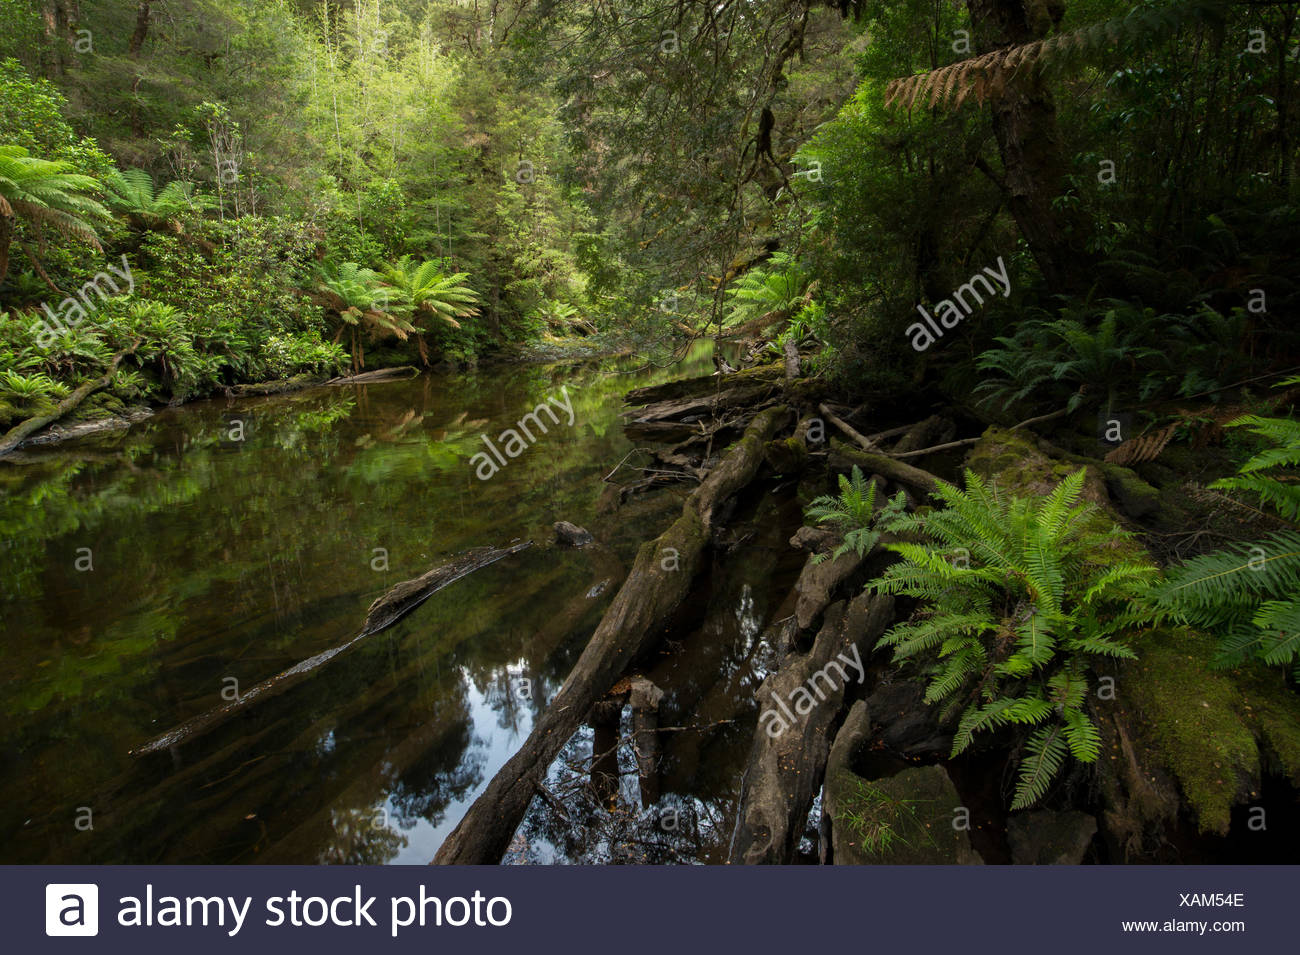 The tannin stained waters of the Styx River flows through a forest of ferns and tall trees. Stock Photo